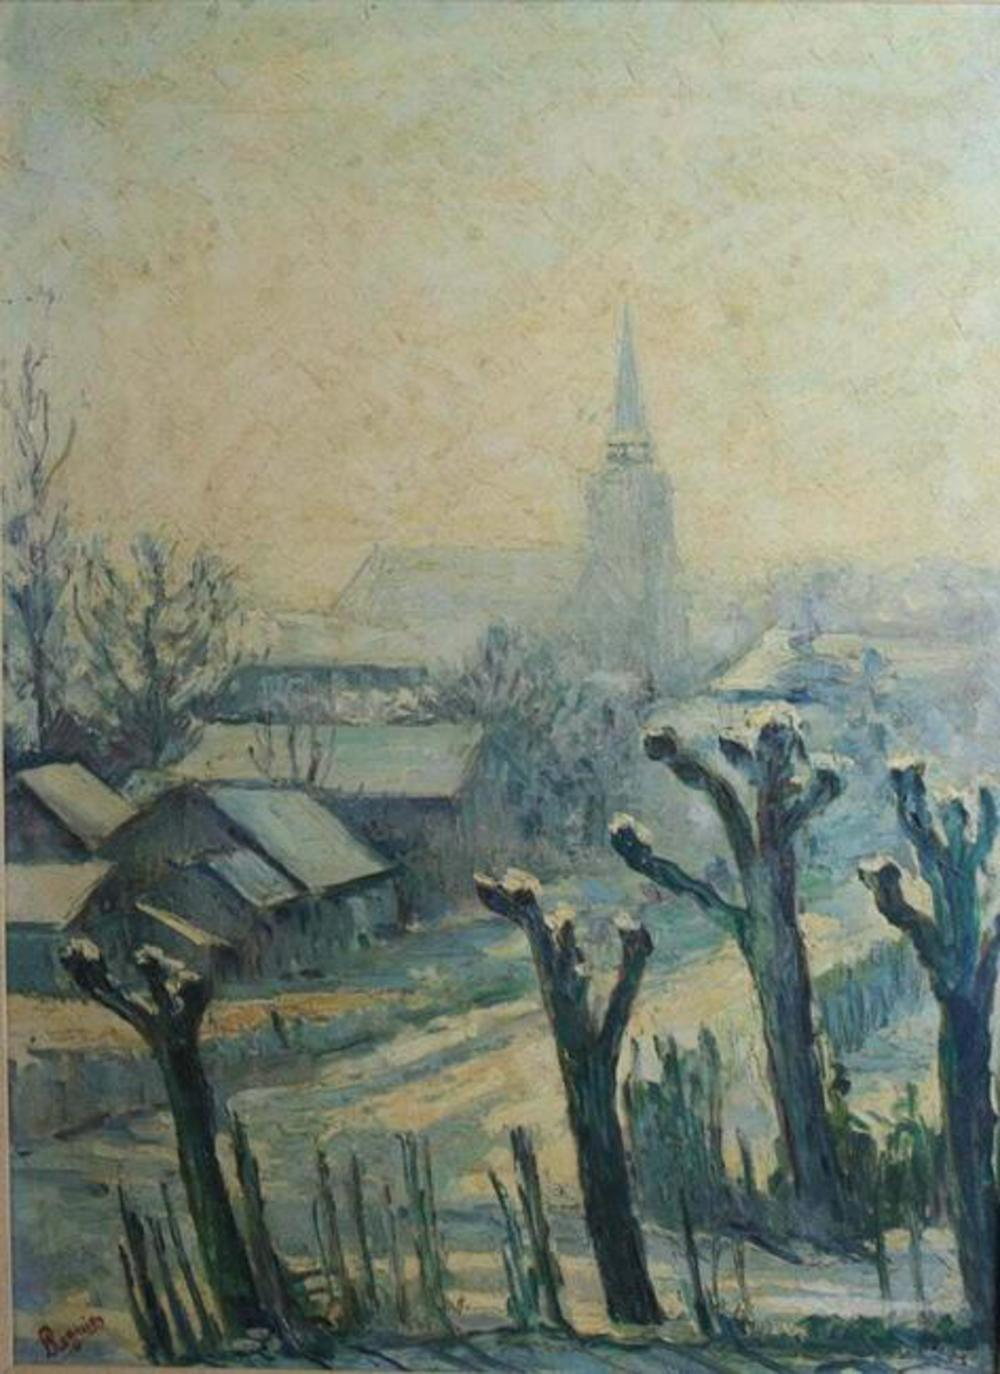 Mid Century A Regnier Oil Painting Impressionistic Landscape in Blues